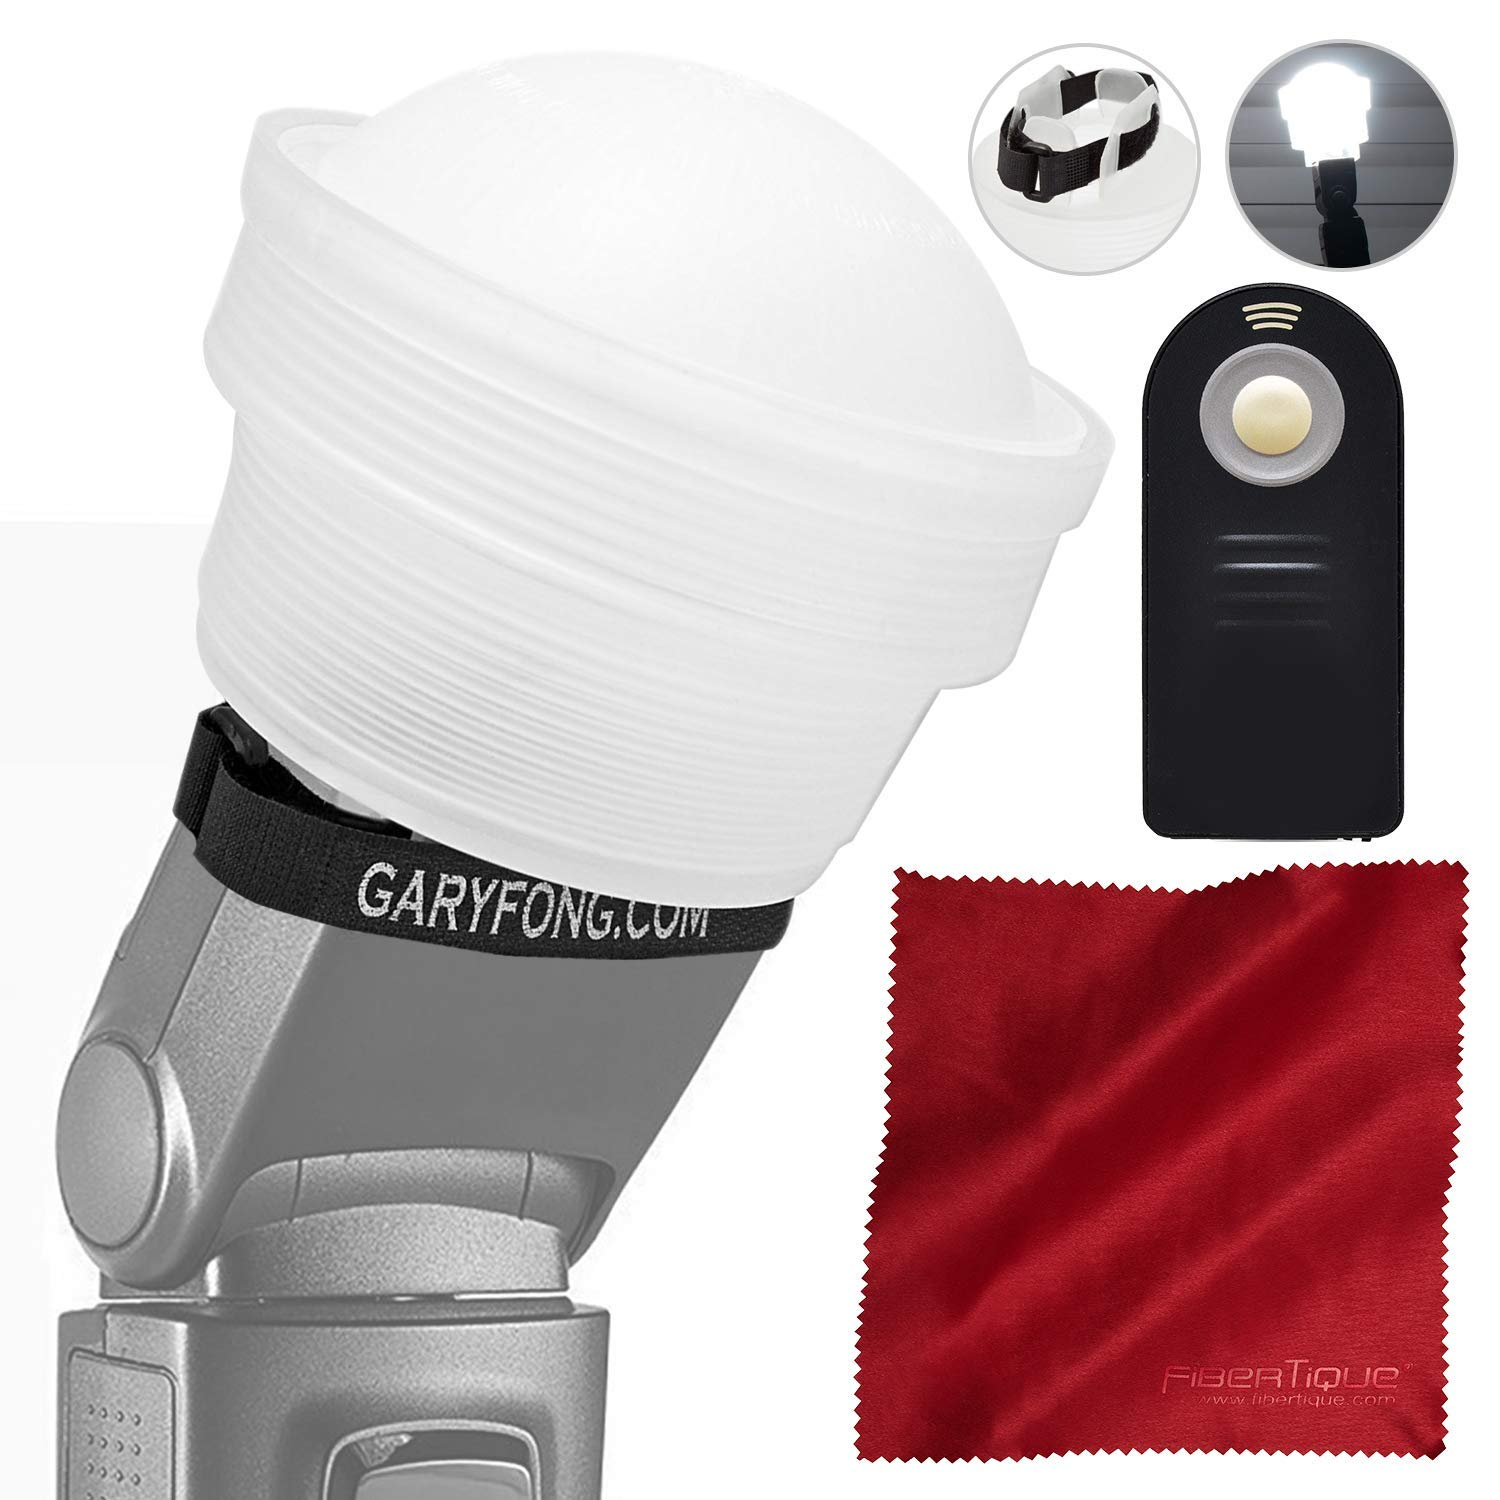 Gary Fong Lightsphere Collapsible with Speed Mount (Generation 5) for Nikon SB-700 SB-5000 SB-500 SB-300 and all Speedlight Flashes + Camera Remote by Gary Fong - Photo Savings